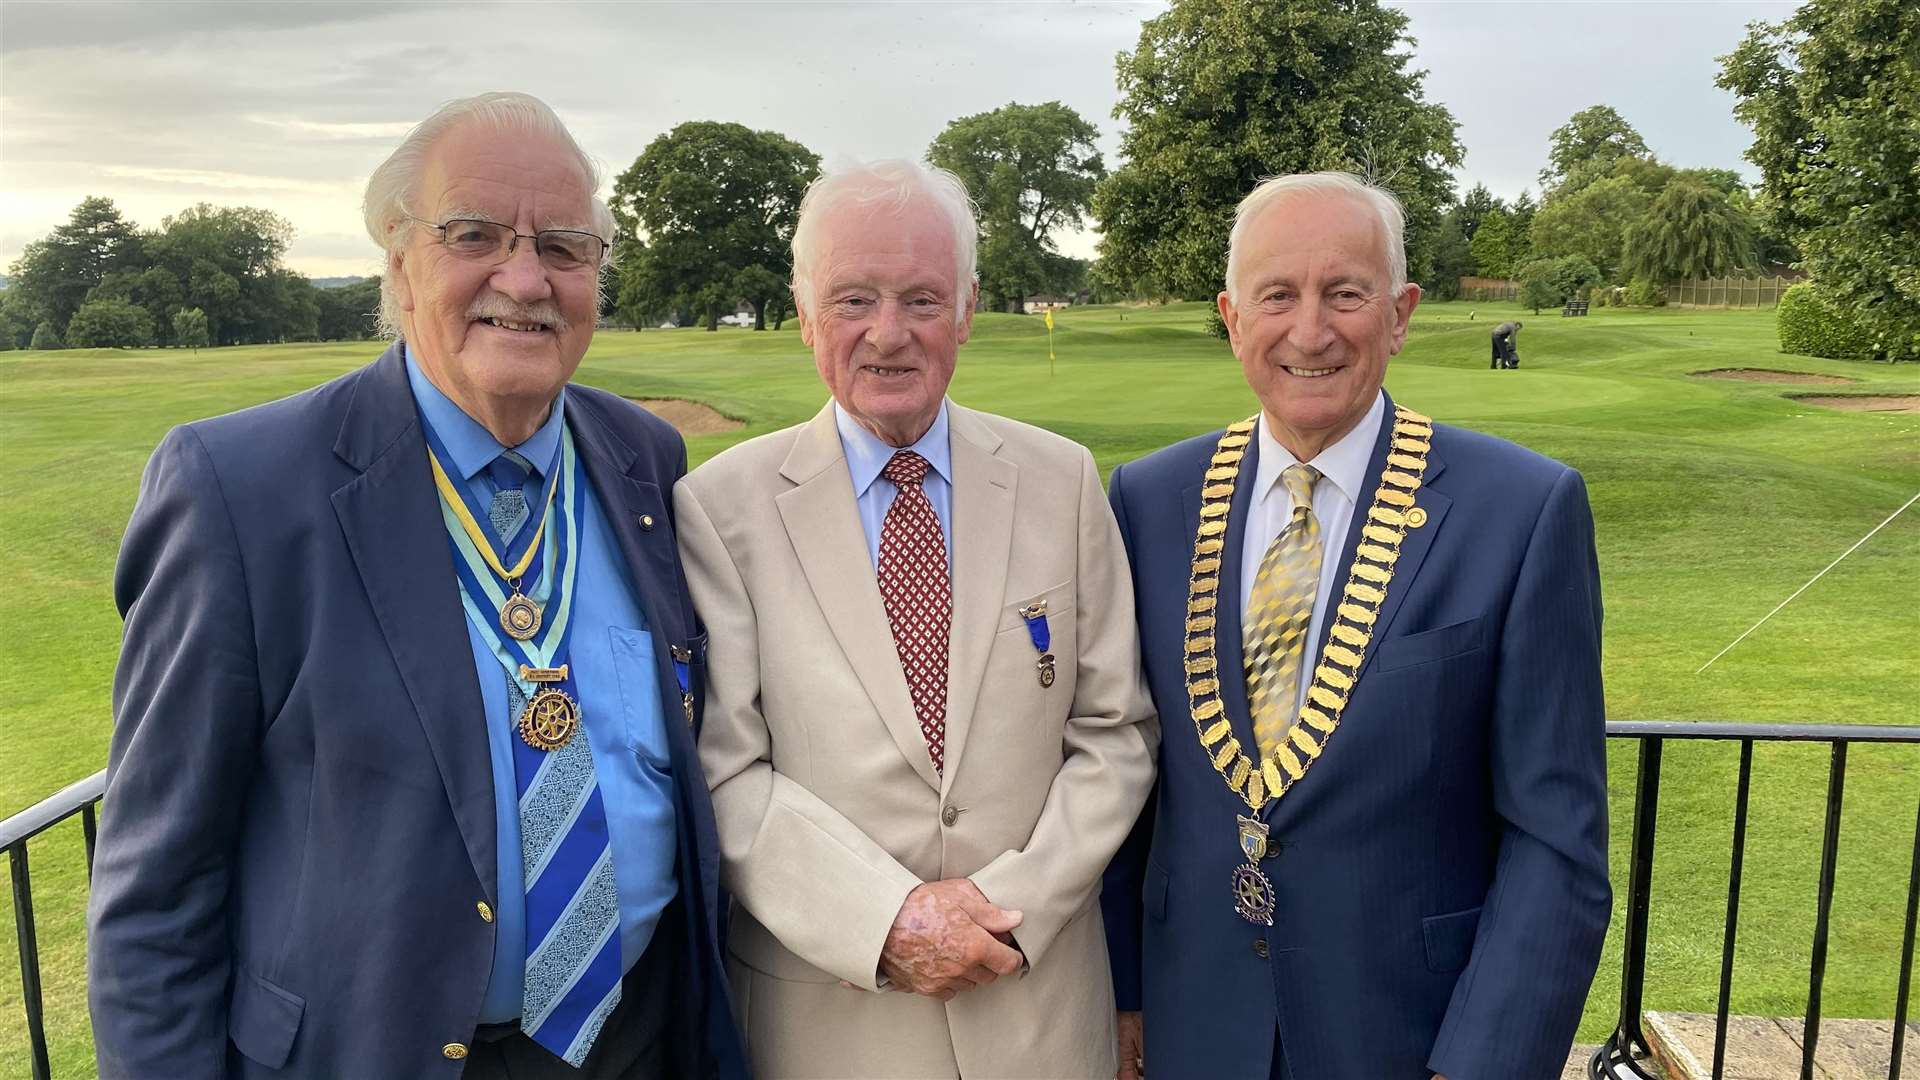 Peter Harris (left), hands over the chain of office to Ernie Foreman (centre) and John Thorpe.